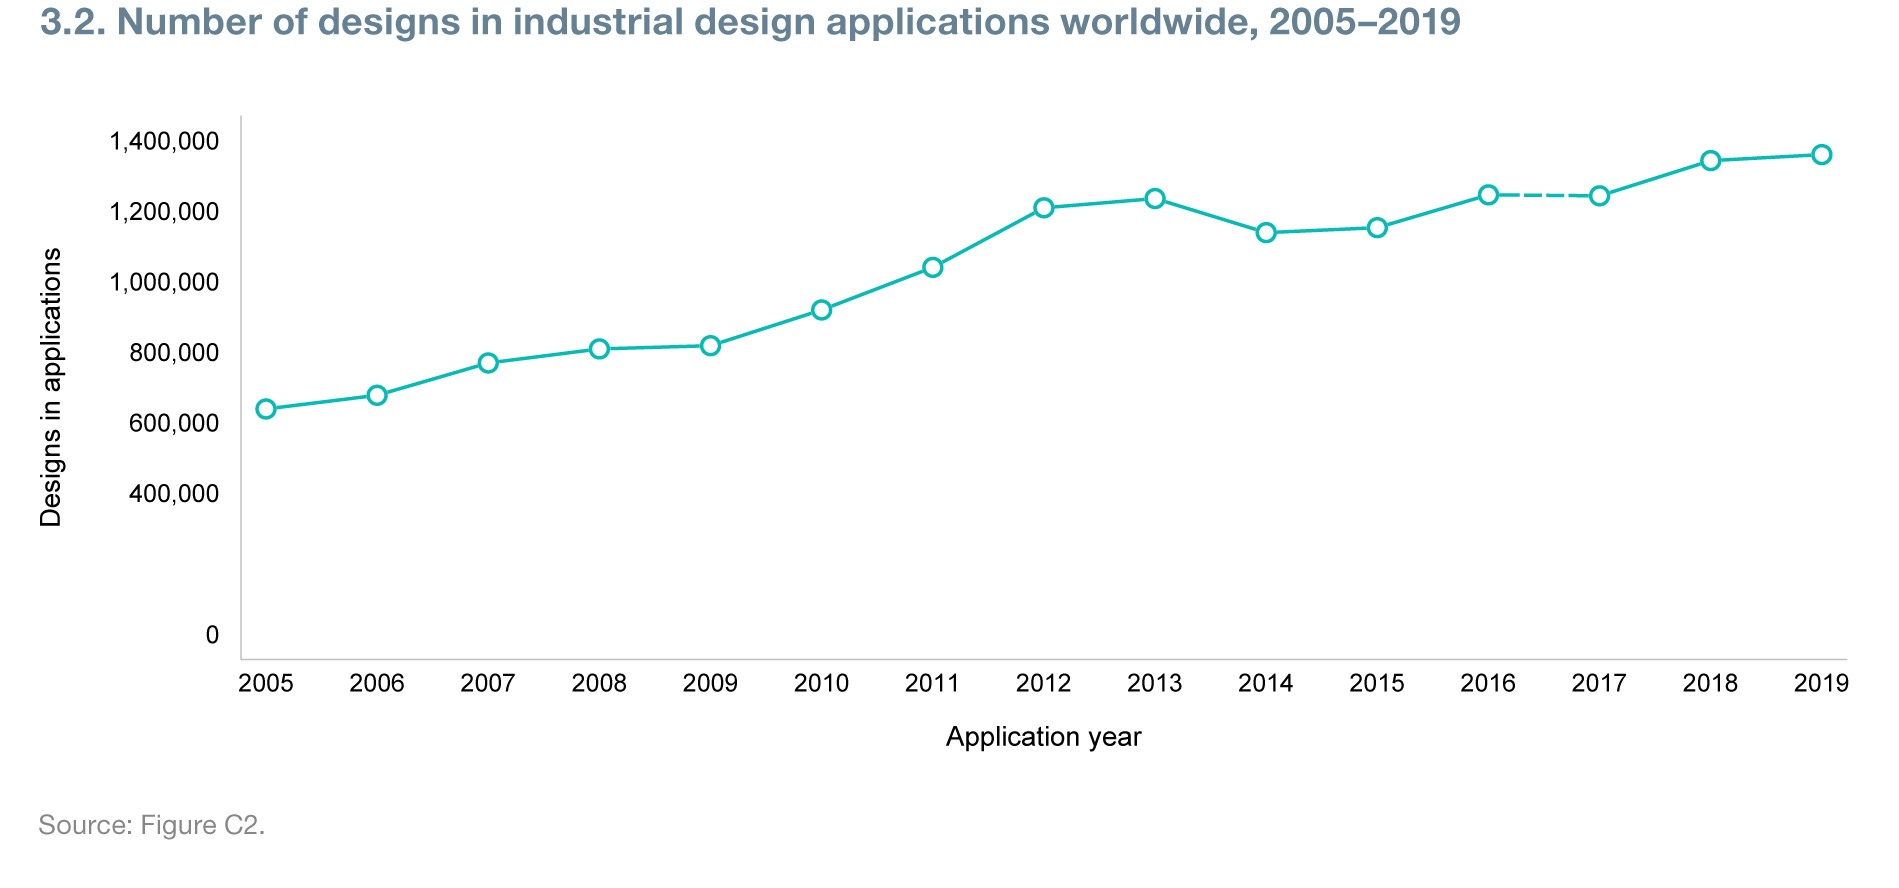 Number of designs in industrial design applications worldwide, 2005-2019